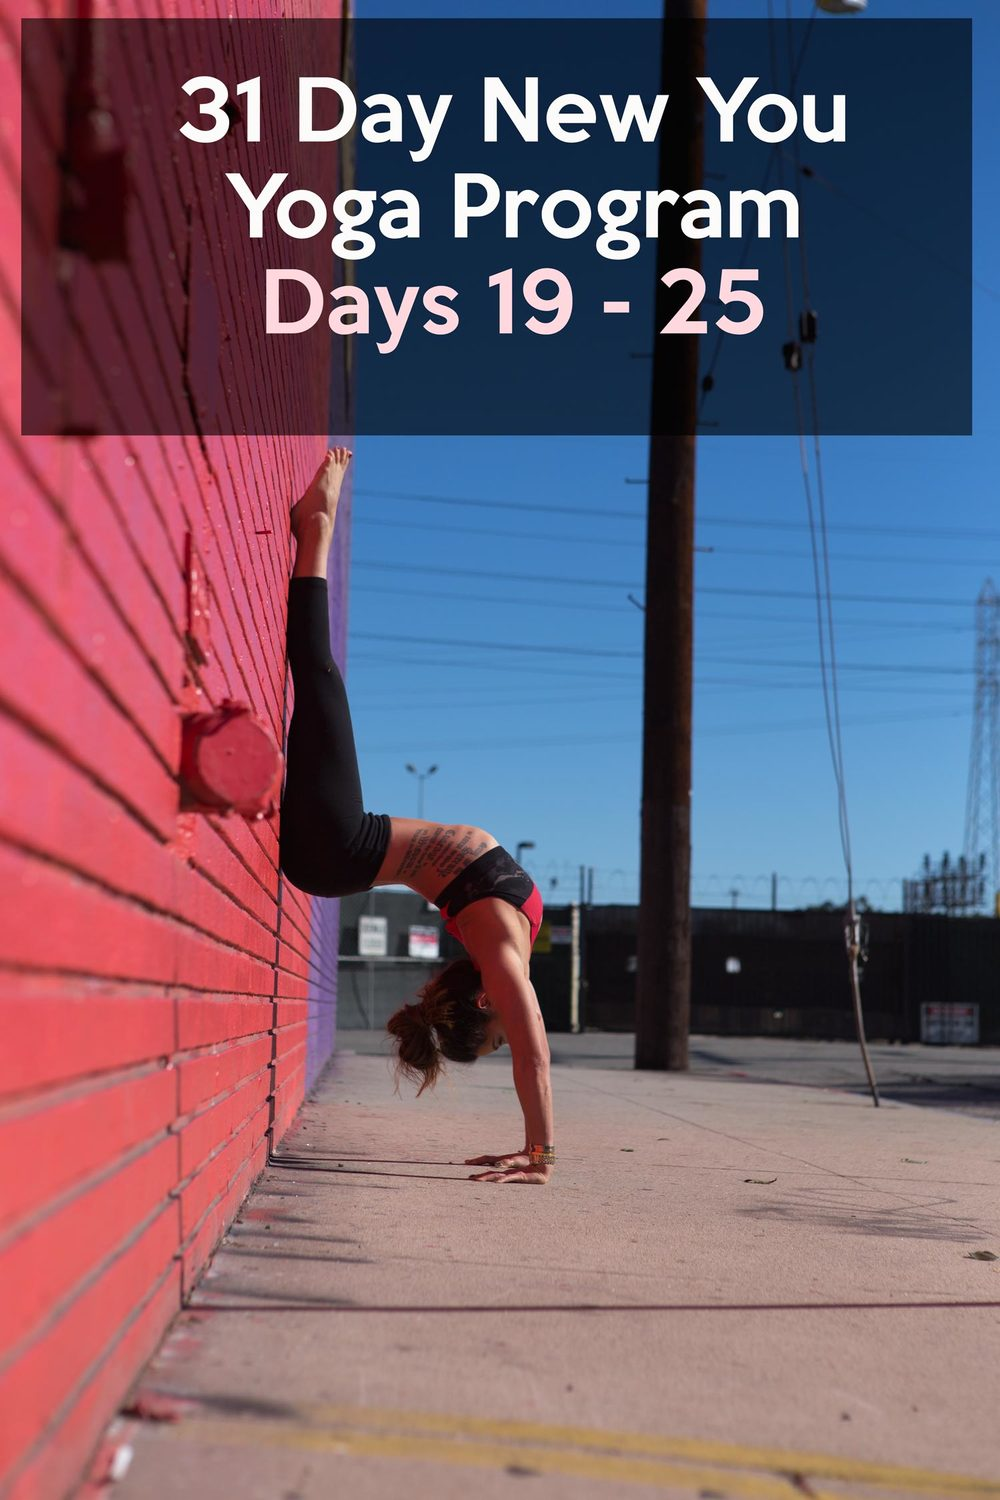 Pin now and join in on the 31 Day New You Yoga Program. Days 19-25 schedule